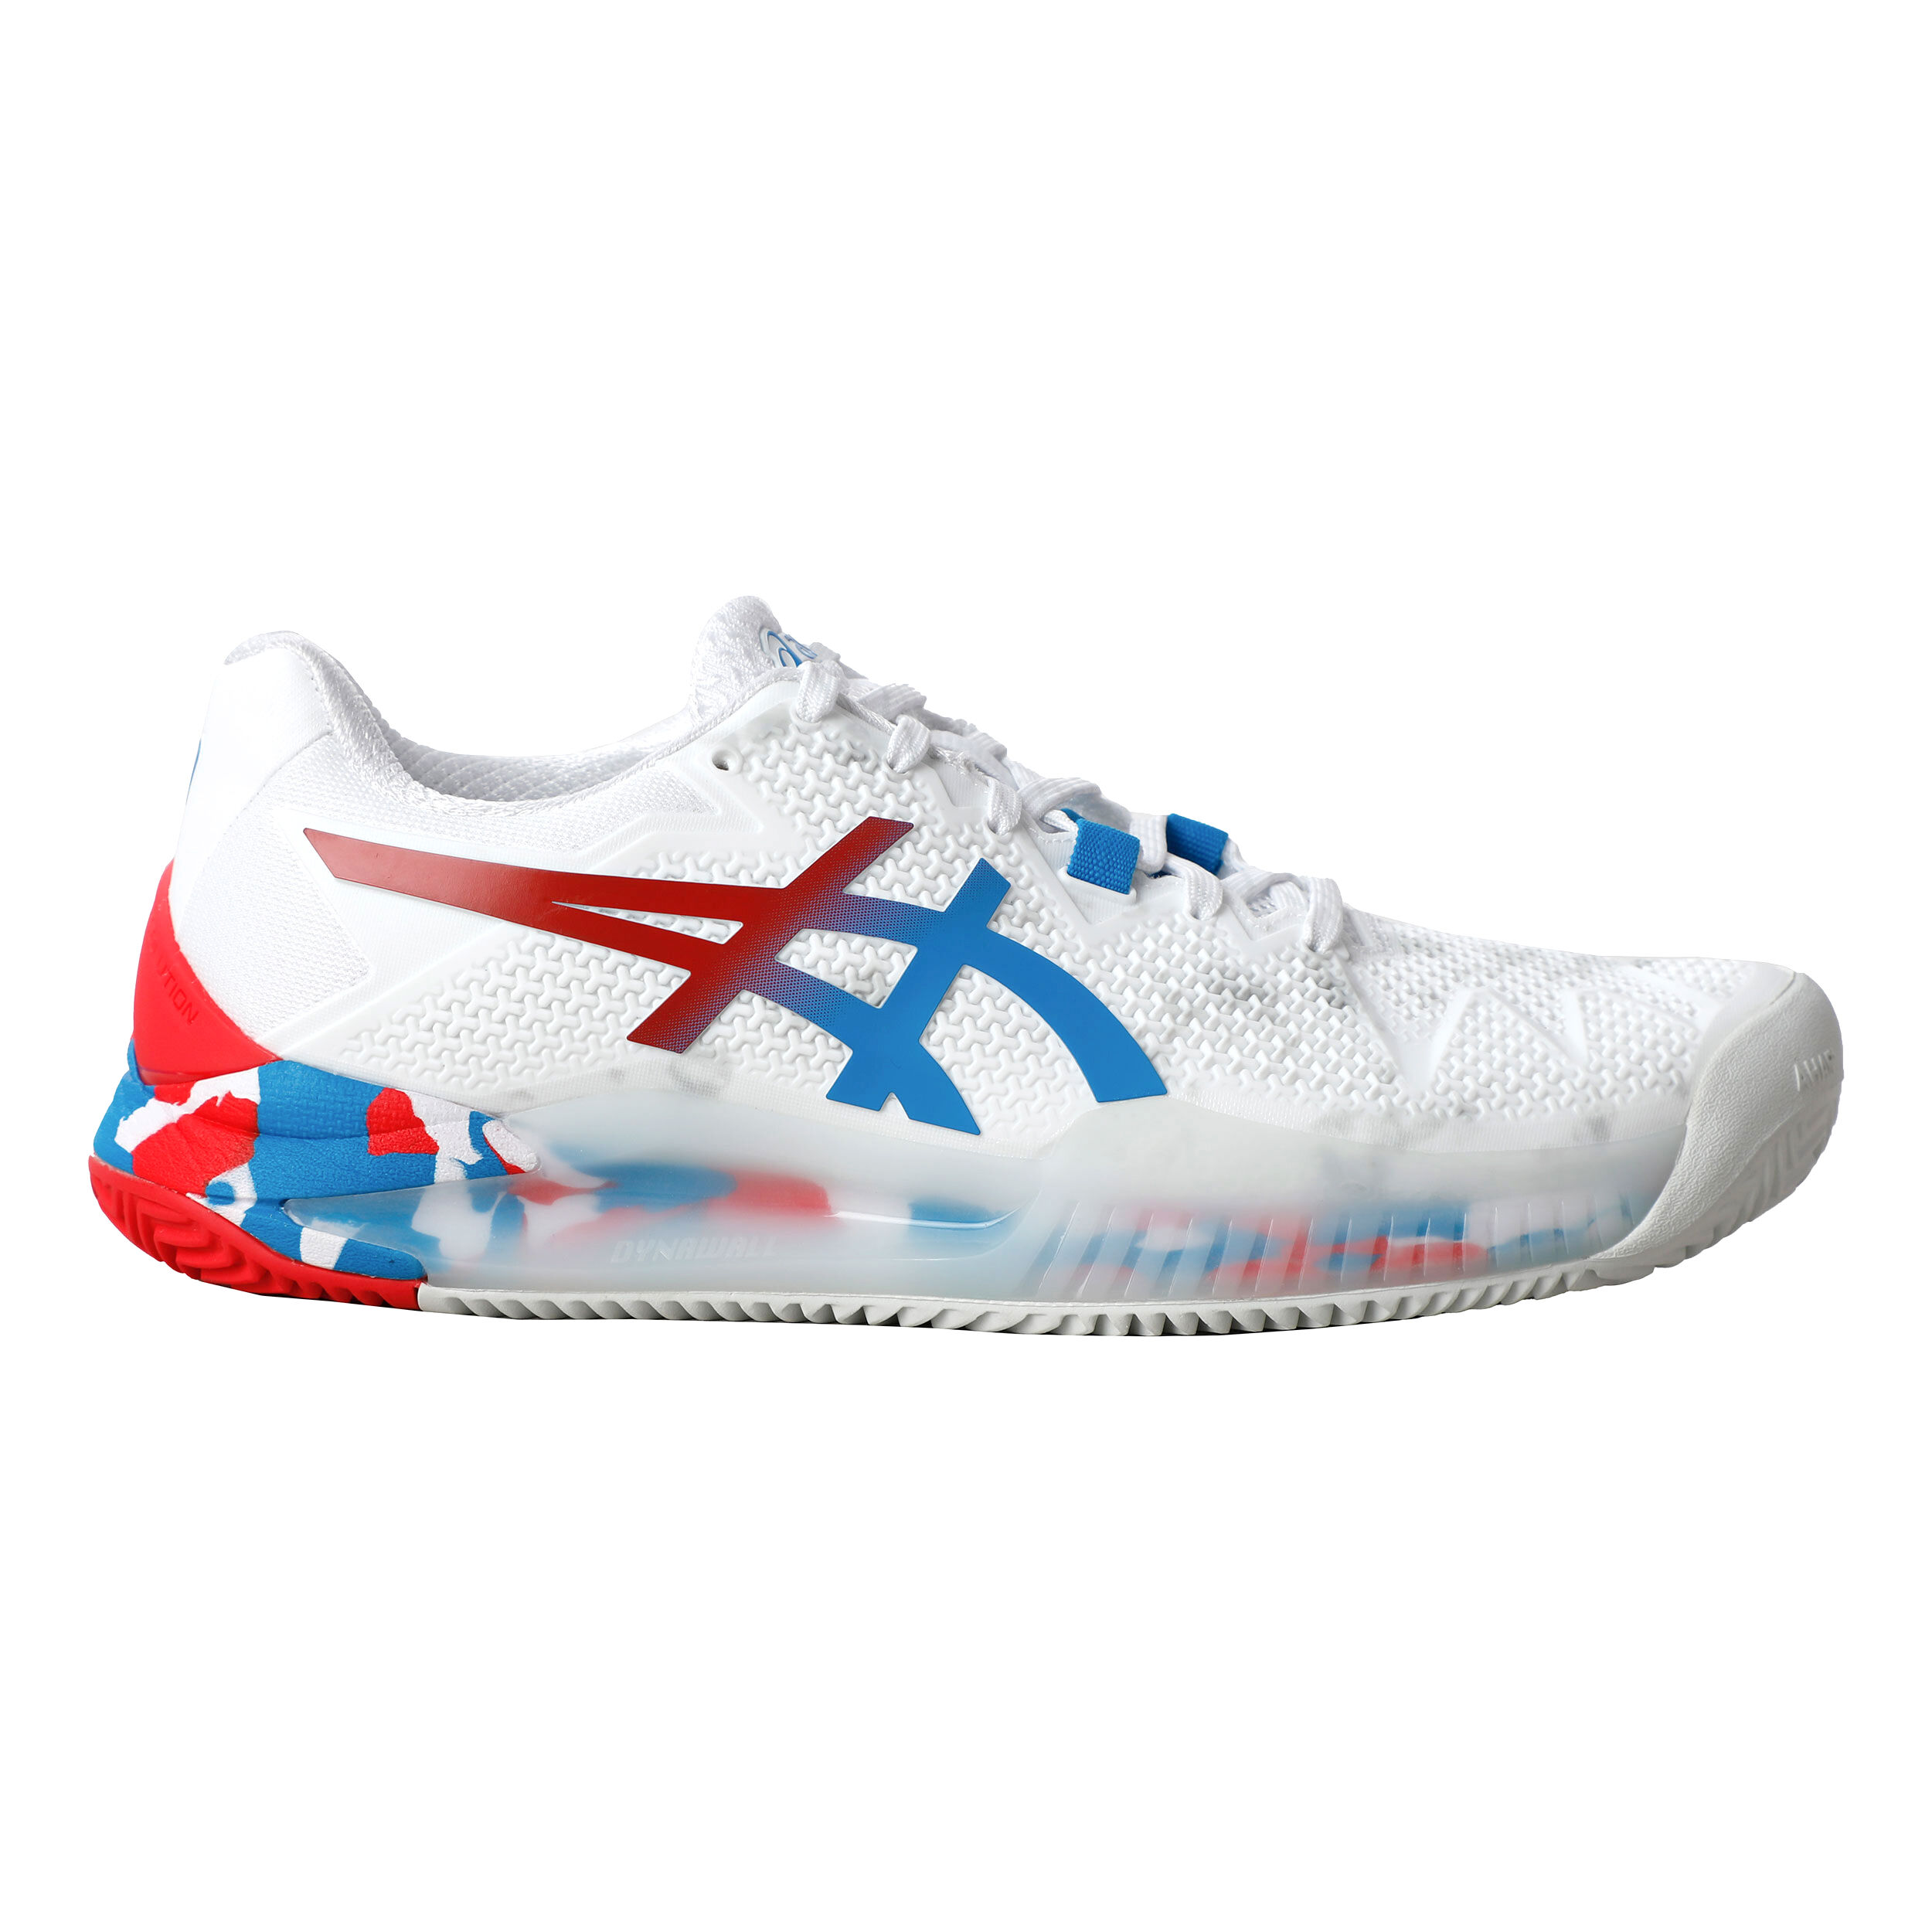 Asics Gel-Resolution 8 L.E. Clay Court Shoe Women - White, Red